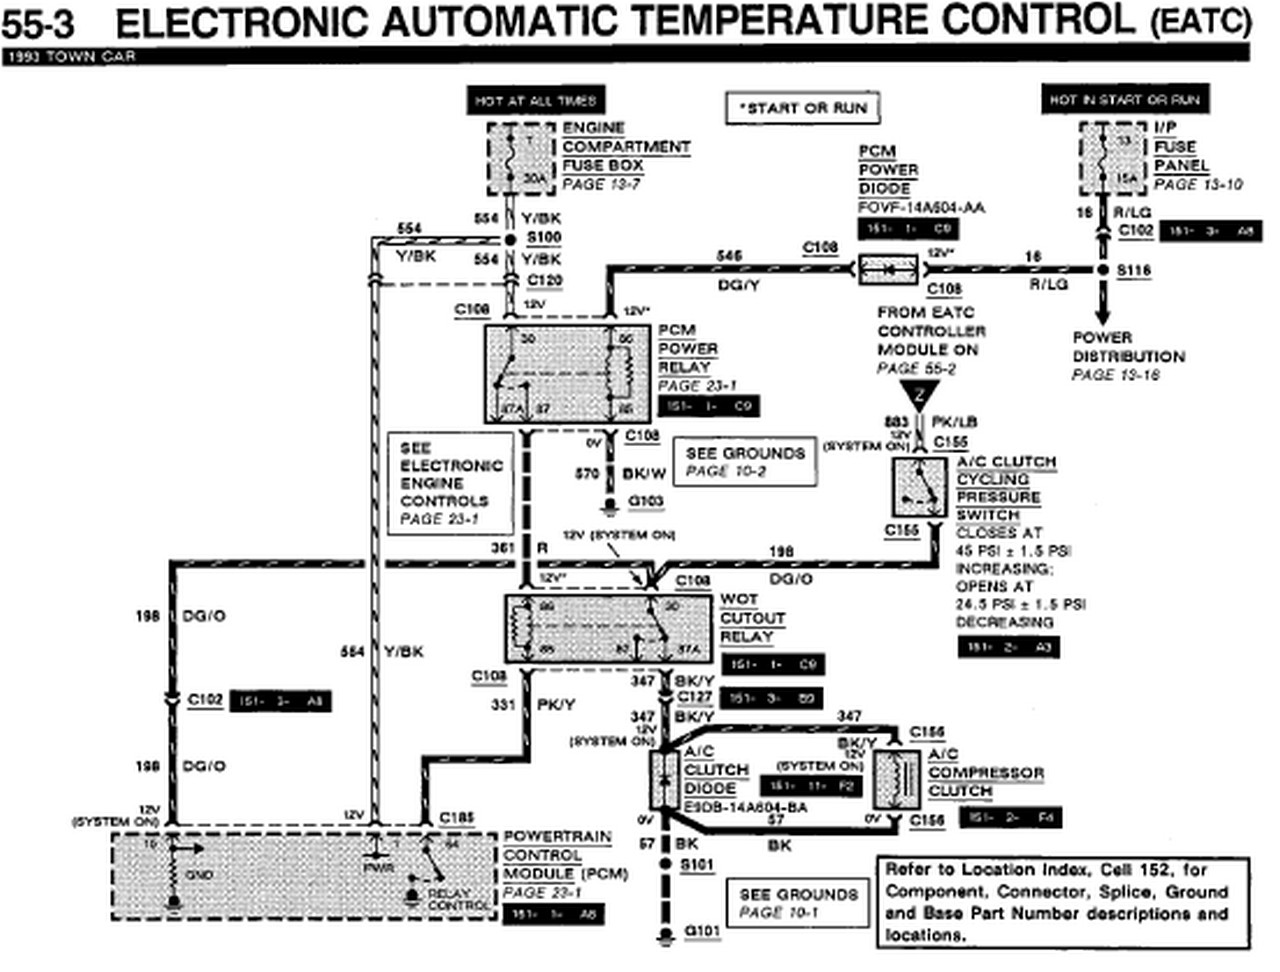 1993 Lincoln Wiring Diagrams Free Diagram For You 2000 Continental Town Car Eatc Auto Mark Viii Navigator Engine